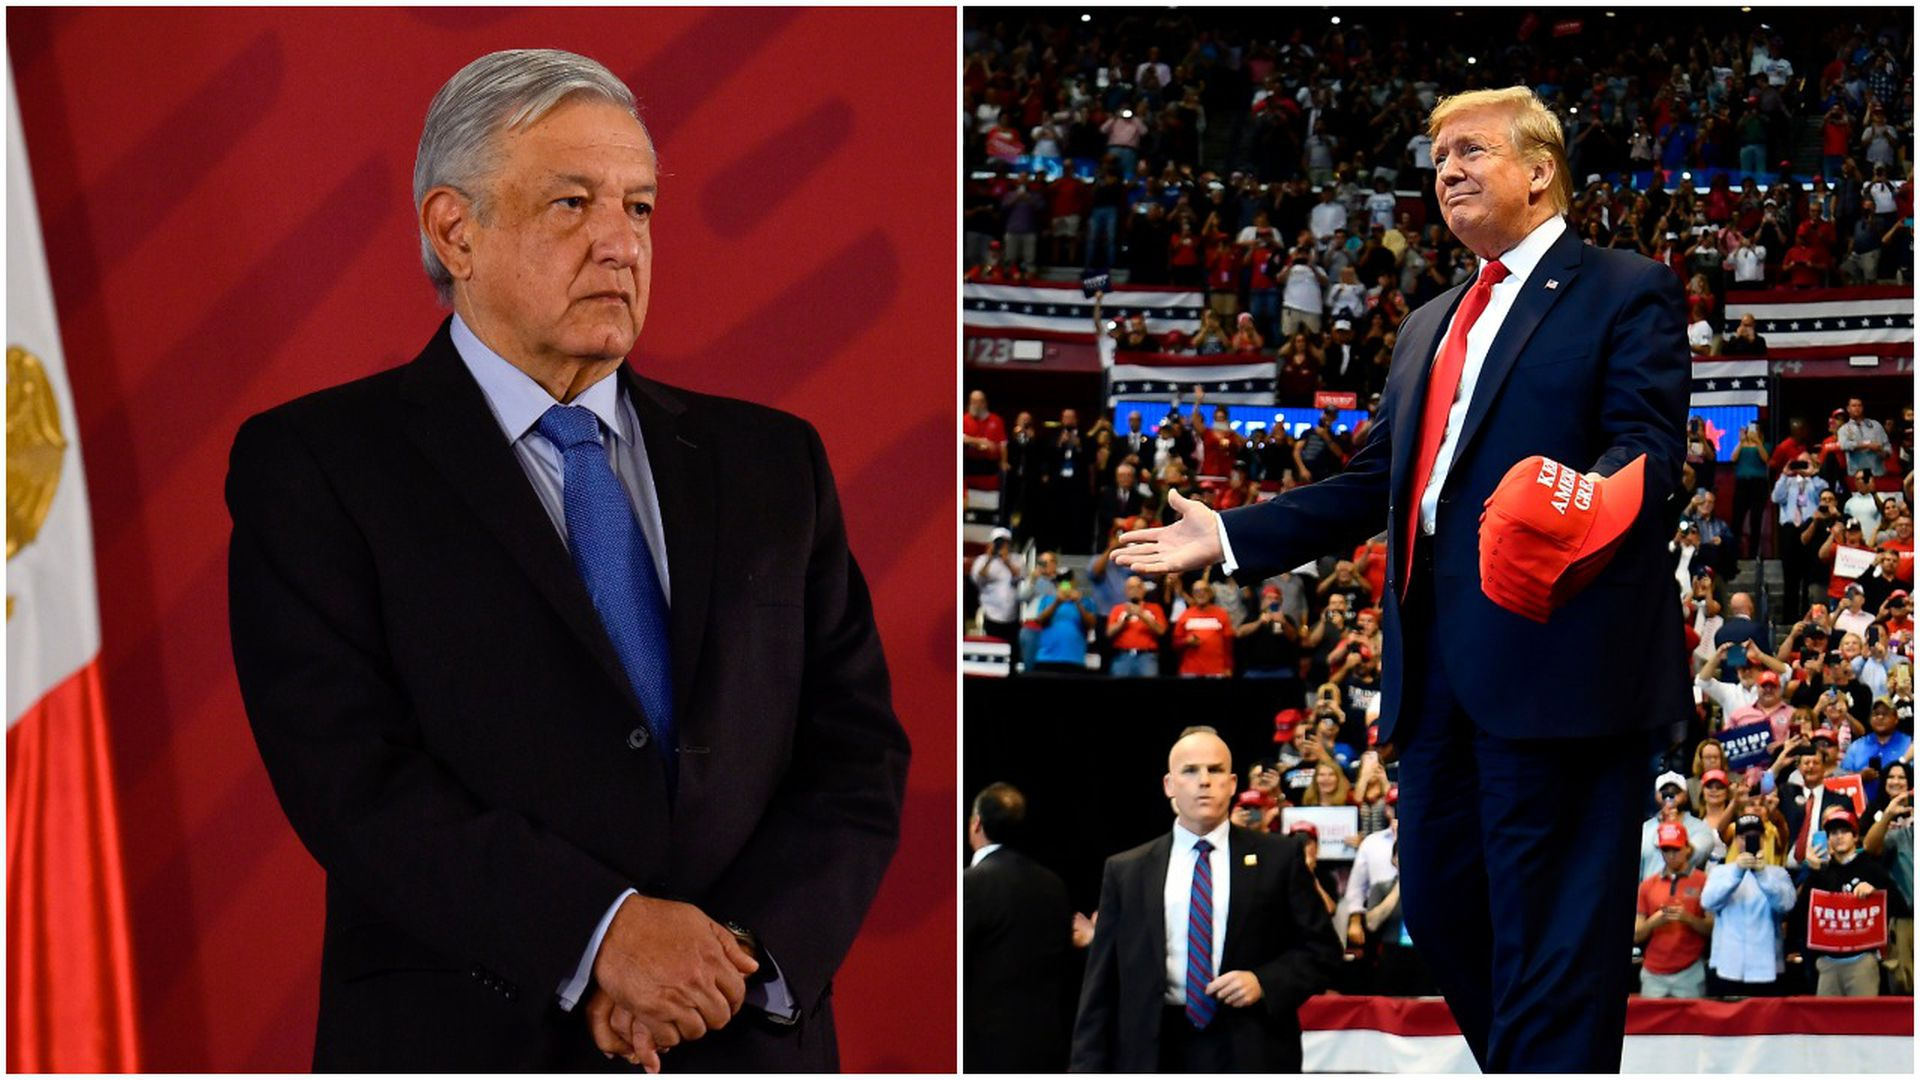 This image is a split screen of Mexico's president and Donald Trump